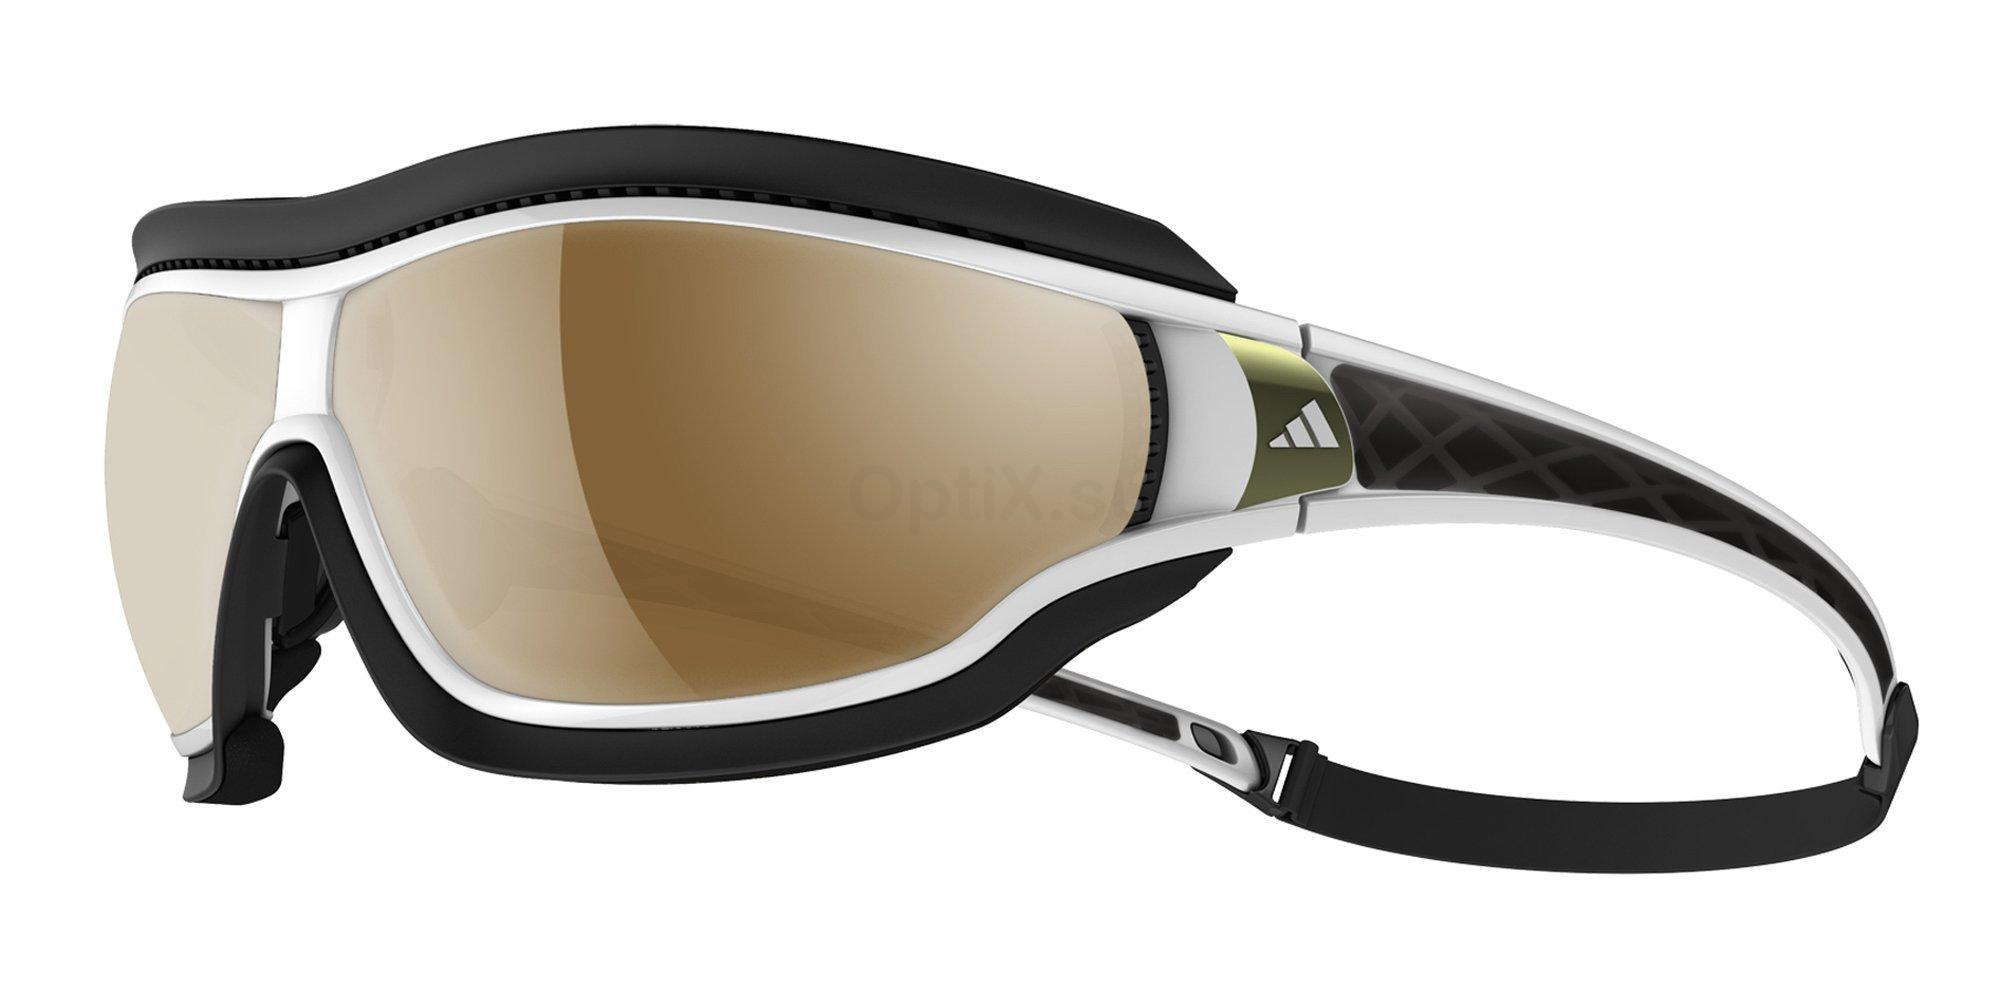 a197 00 6052 a197 Tycane Pro Outdoor S Sunglasses, Adidas